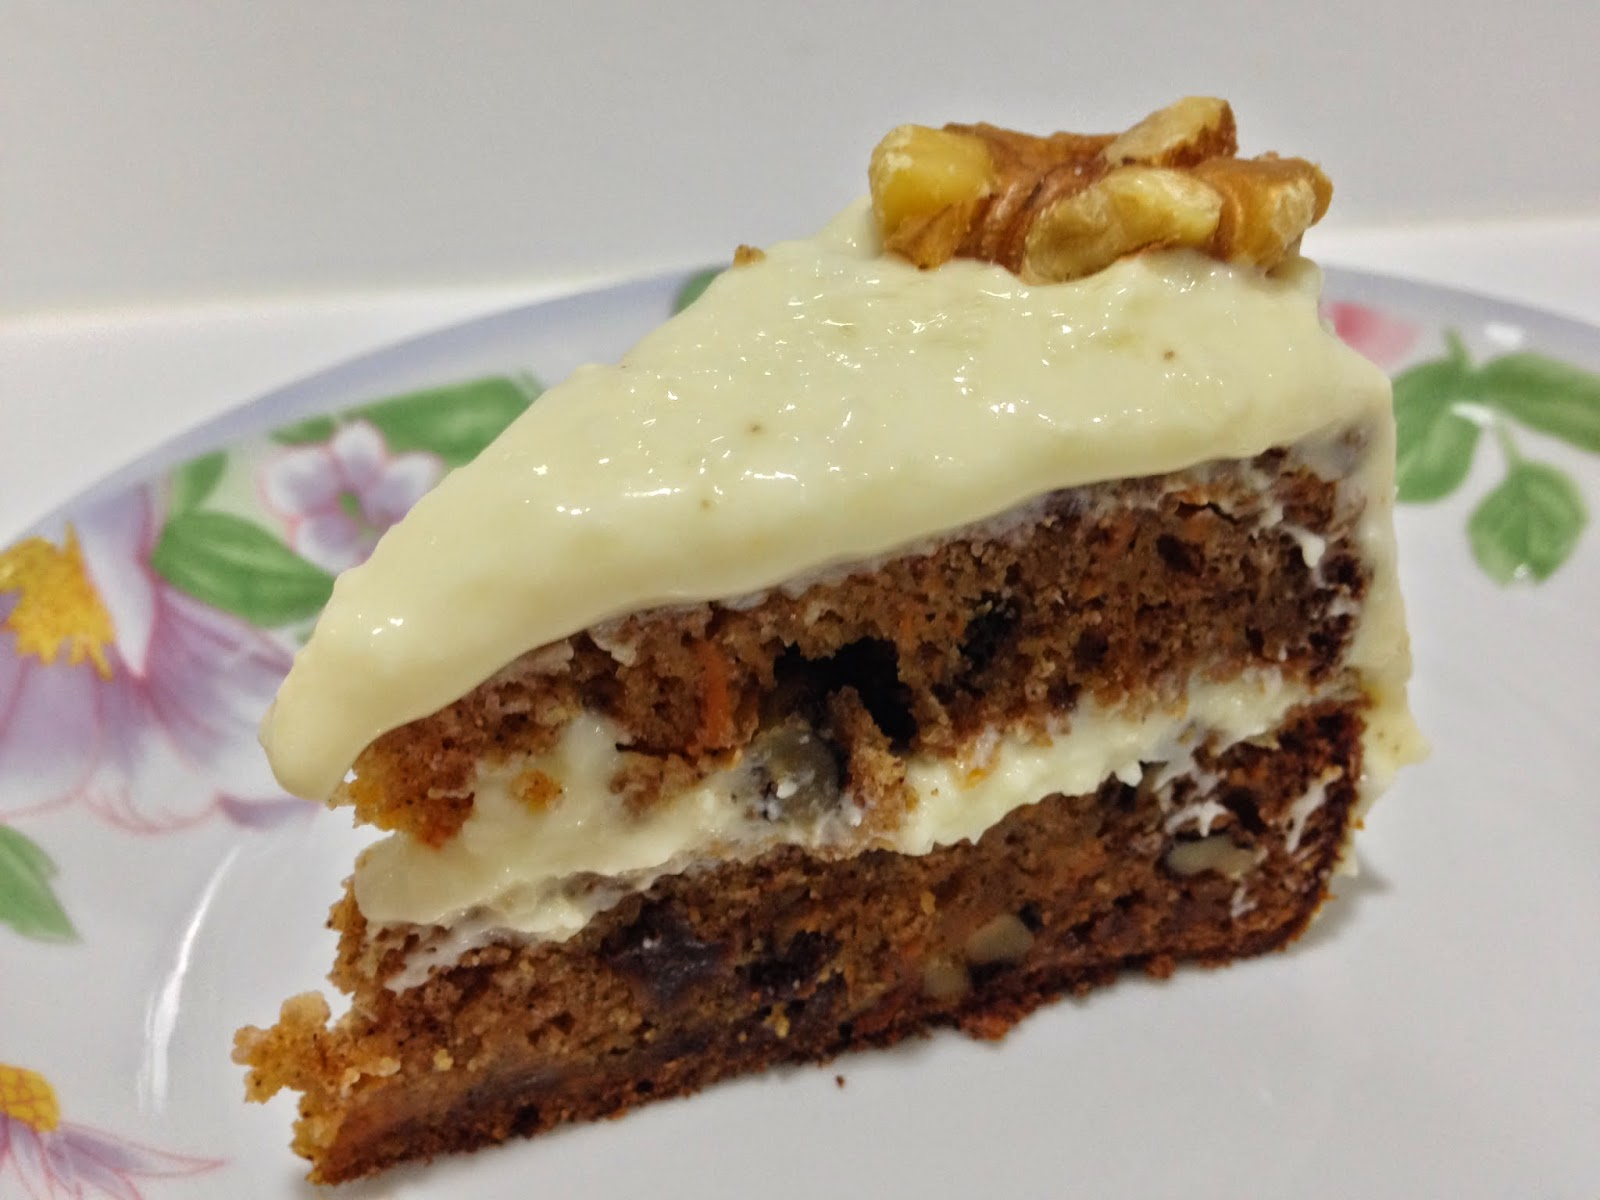 Carrot Cake Recipe Uk Healthy: Lulumummy: Air Fryer Healthy Carrot Cake With Cream Cheese